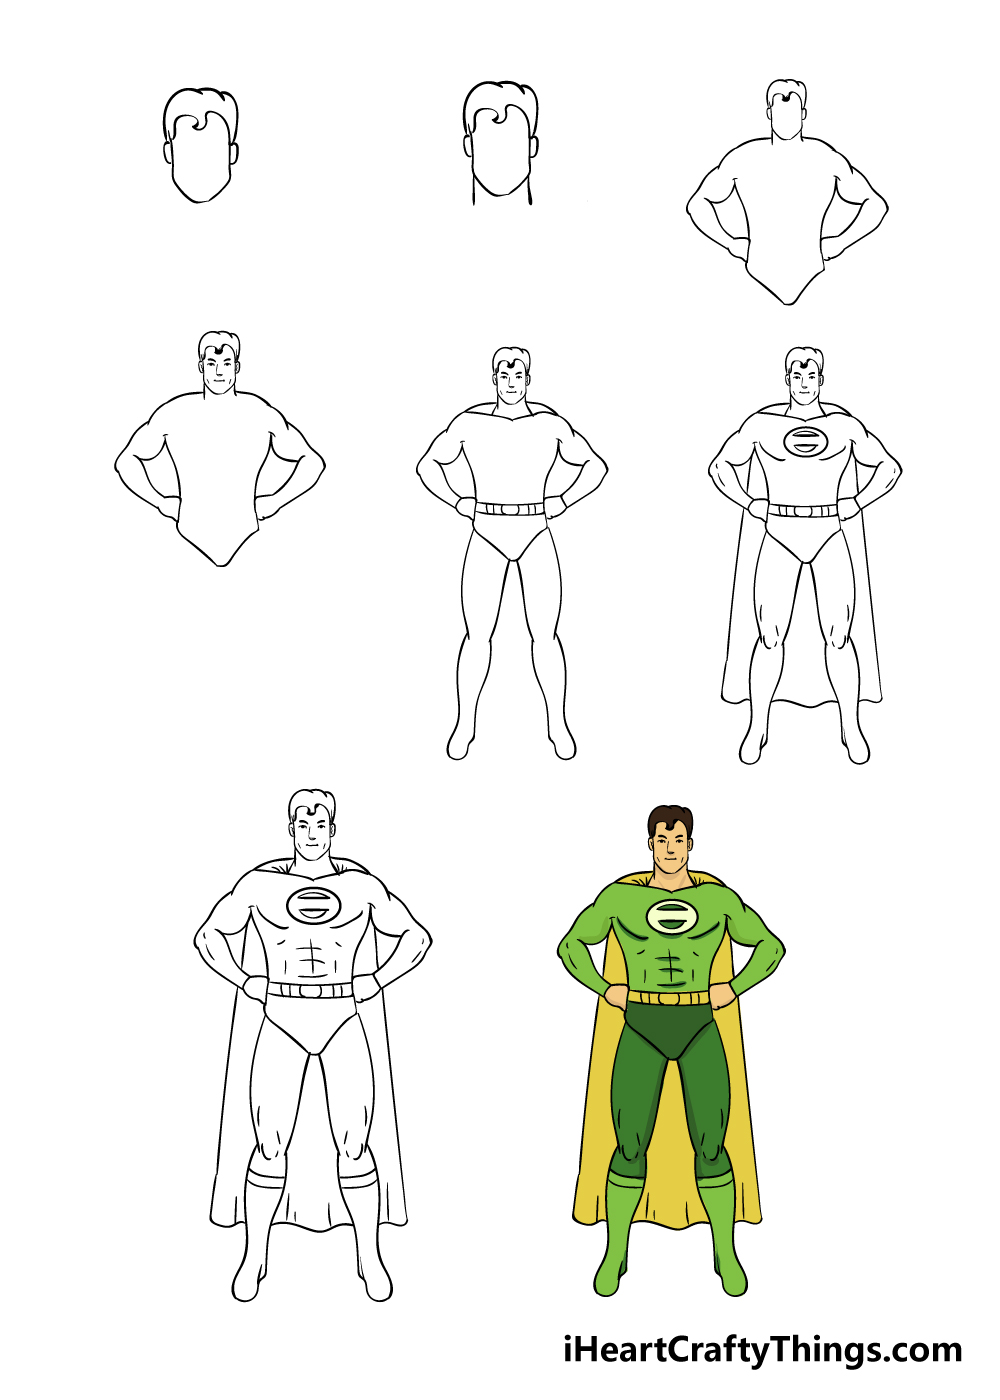 how to draw superhero in 8 steps